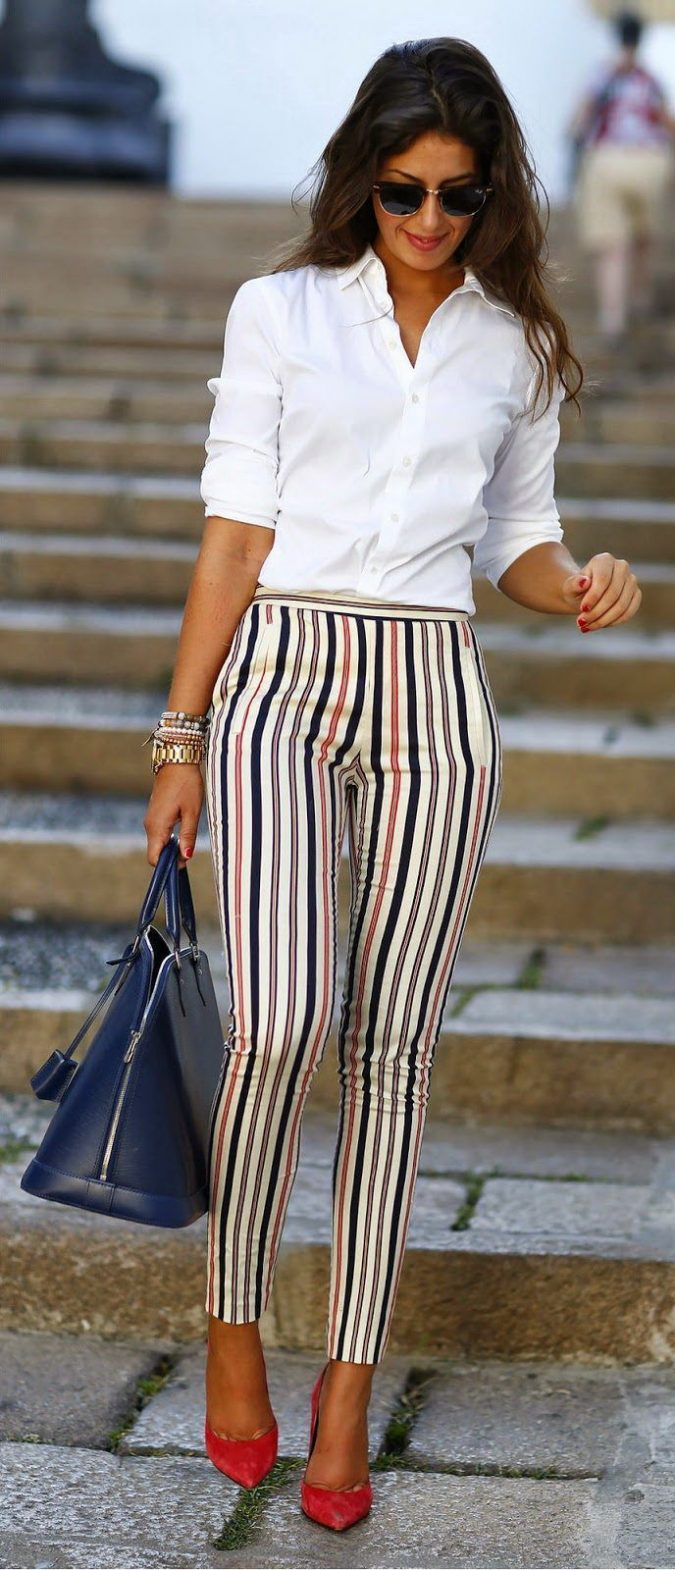 Stripes9-675x1570 6 Main Fashion Trends of Spring & Summer 2018